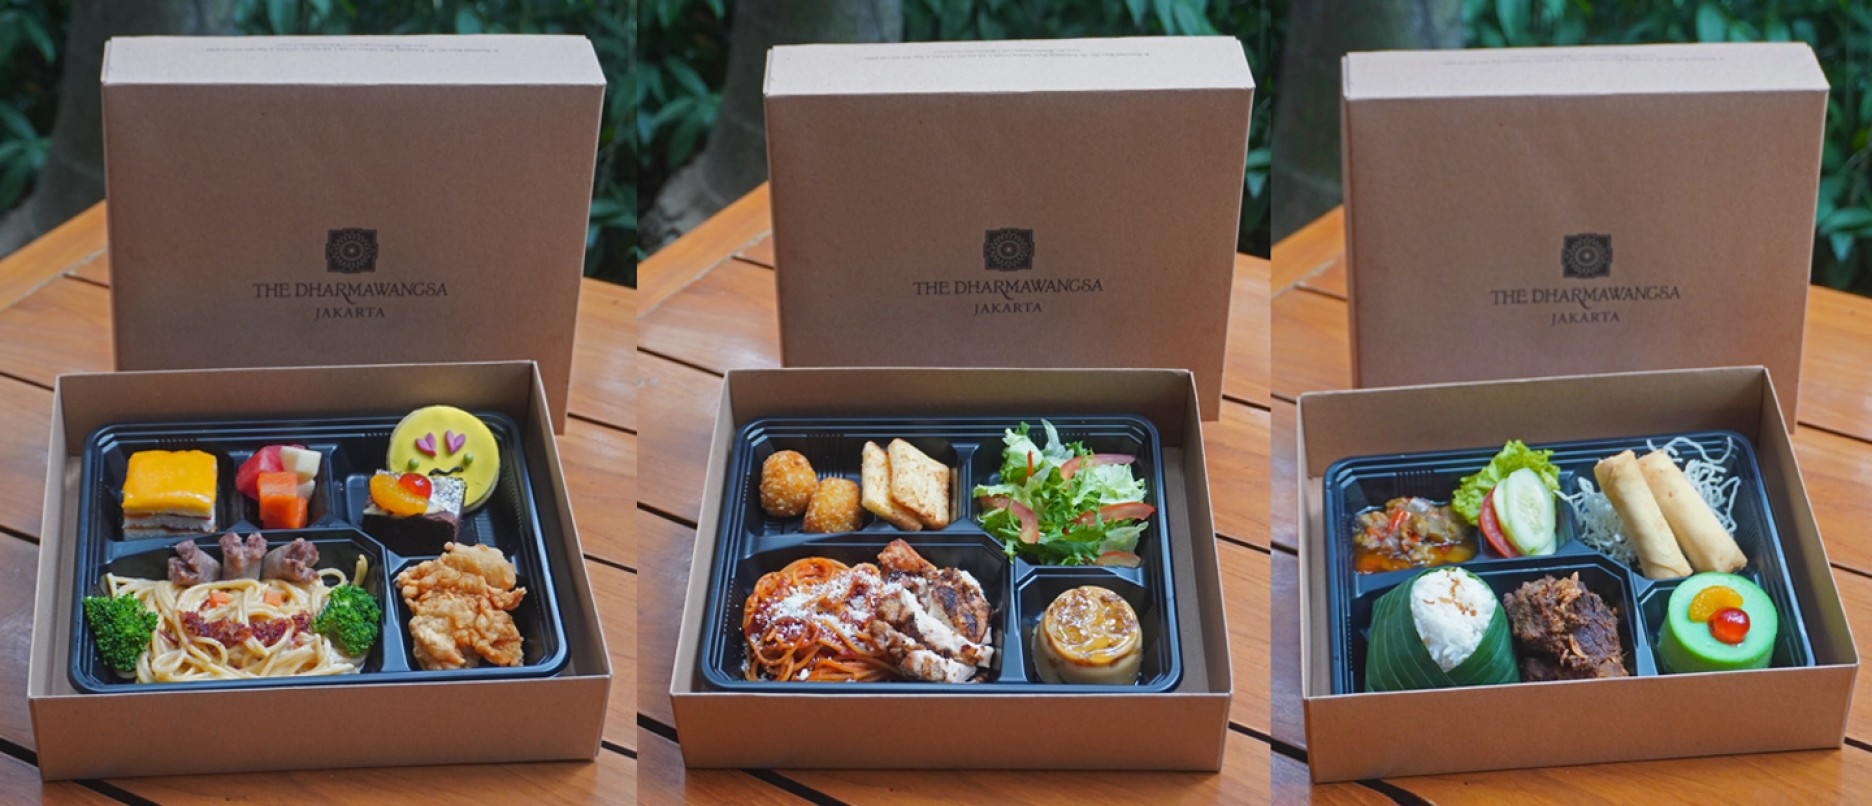 The Dharmawangsa To-Go and Meal Box